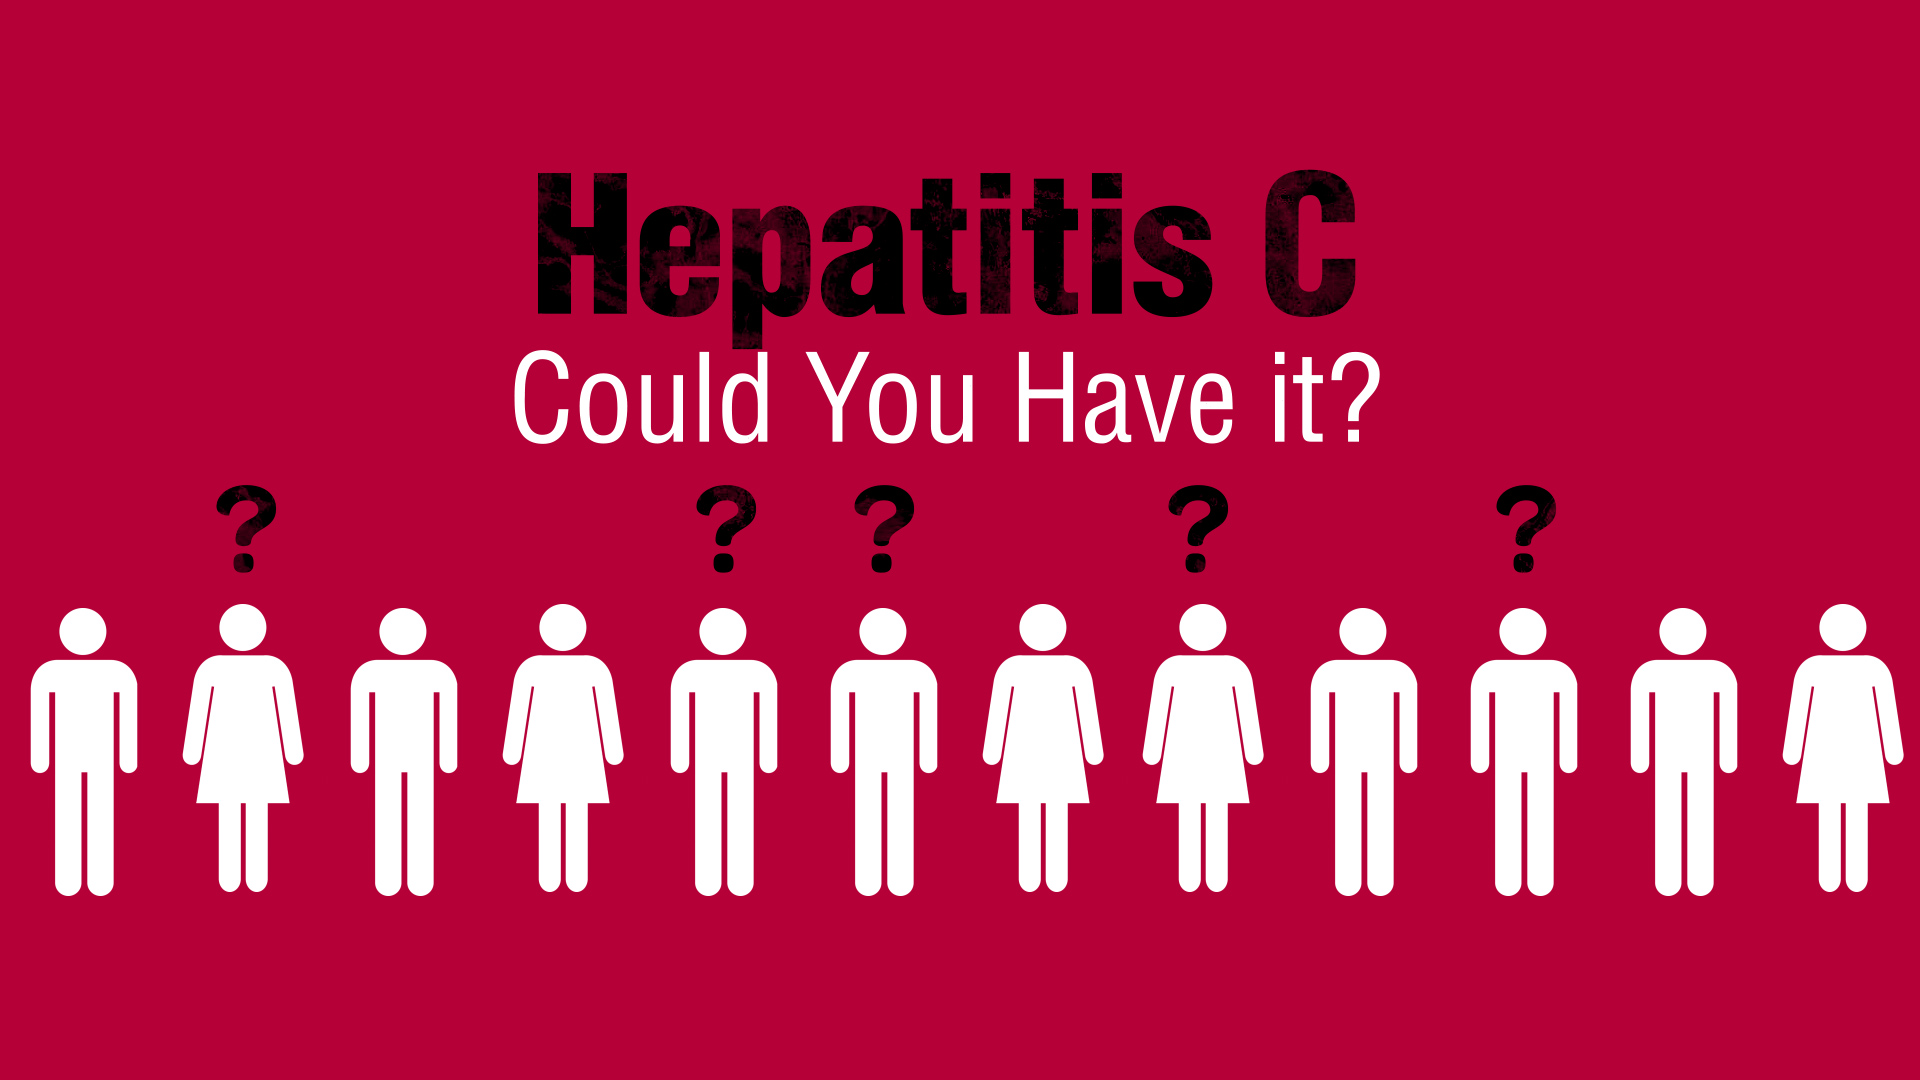 "What is Hepatitis C? - ""Hepatitis"" means inflammation of the liver. Hepatitis C is a contagious liver disease that ranges in severity from a mild illness lasting a few weeks to a serious, lifelong illness that attacks the liver. It results from infection with the Hepatitis C virus (HCV), which is spread primarily through contact with the blood of an infected person.An estimated 2.7-3.9 million people in the United States have chronic hepatitis C."